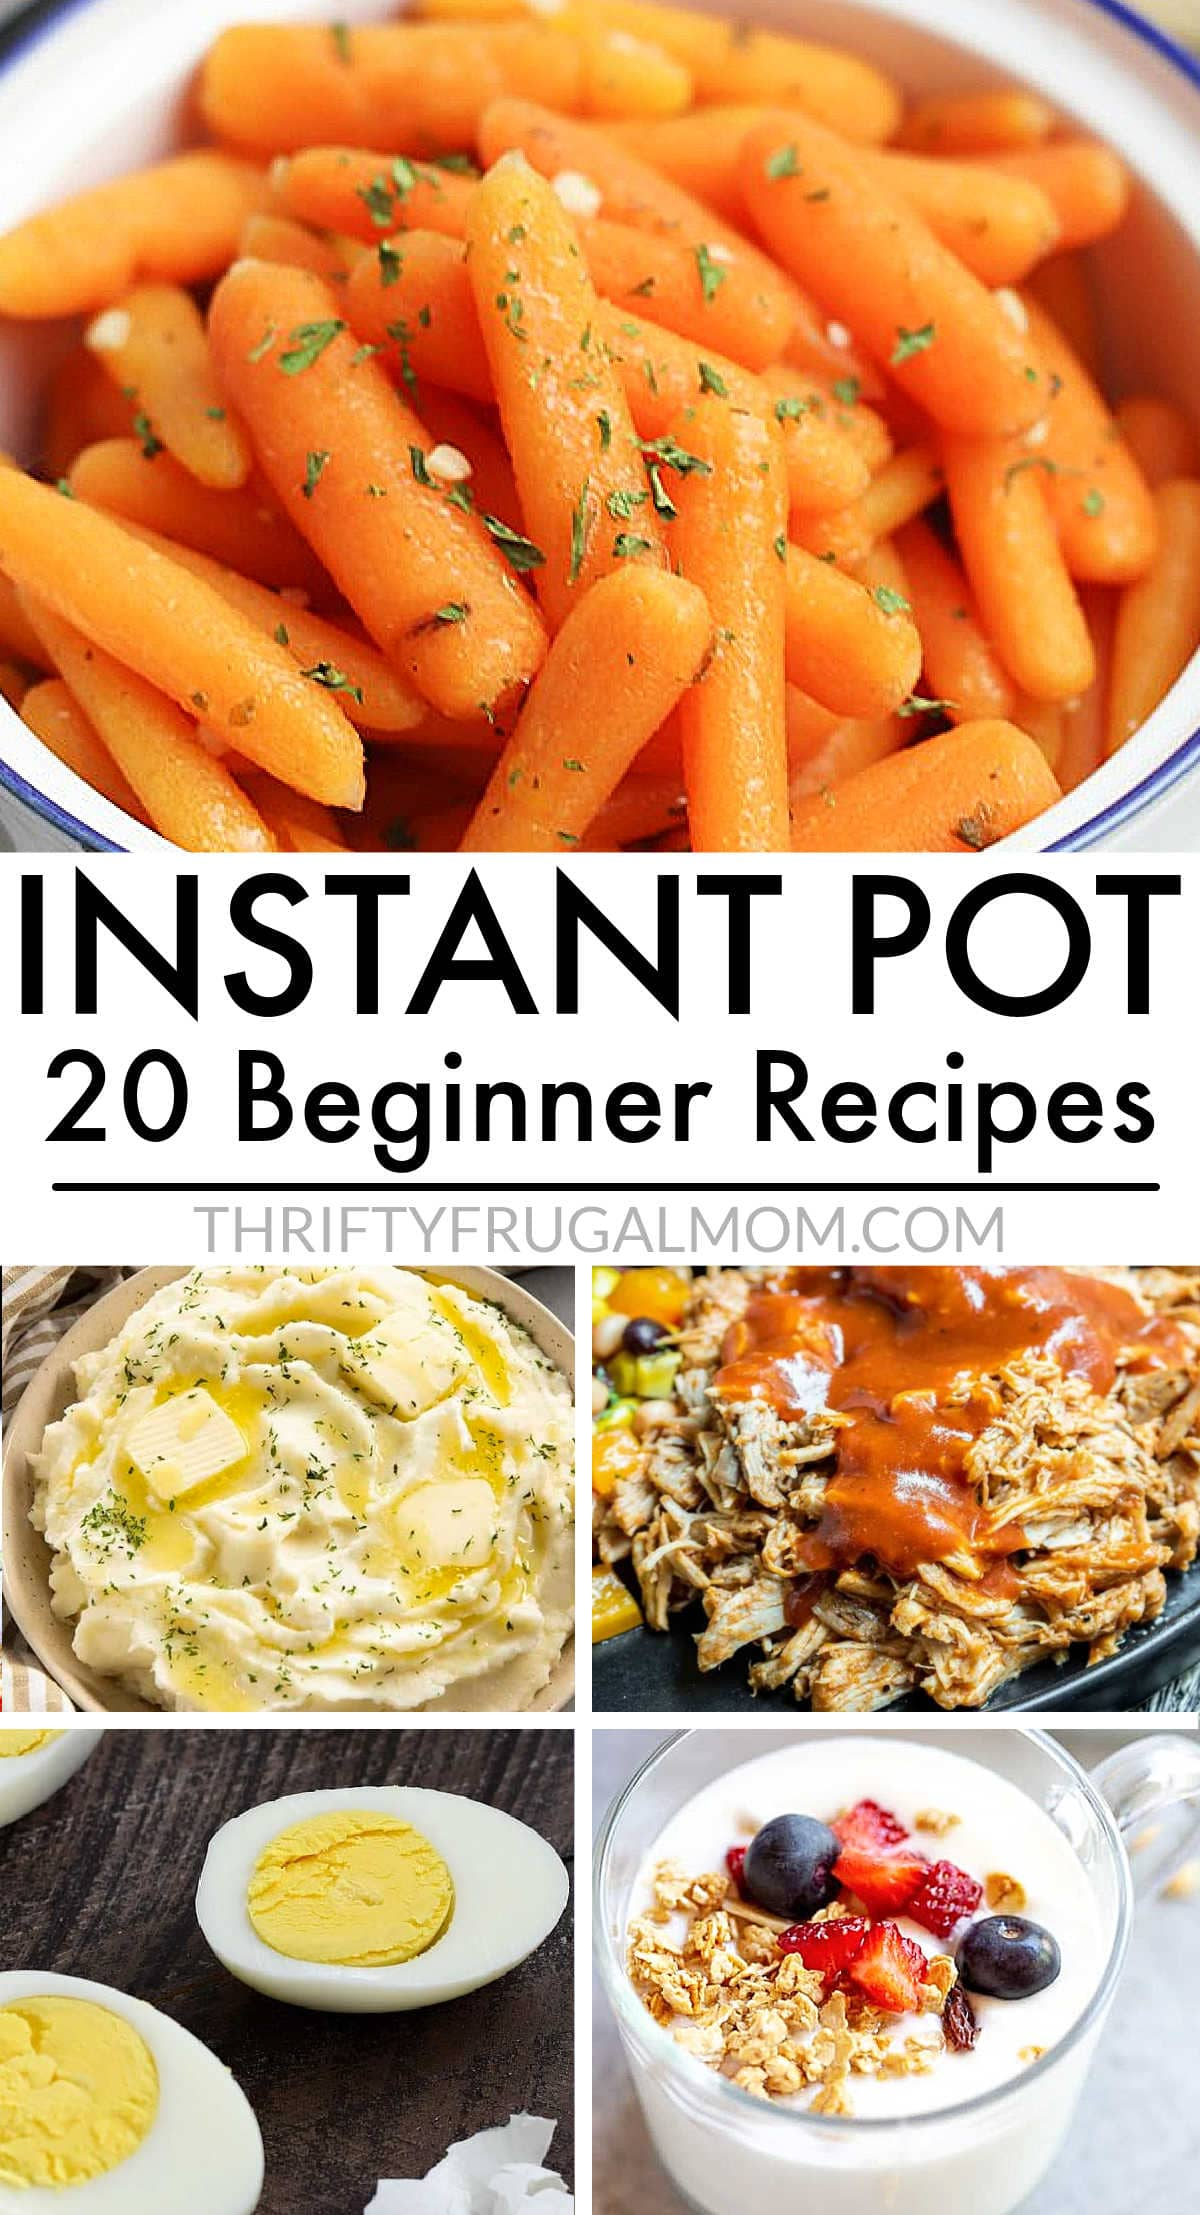 a collage of easy Instant Pot beginner recipes- hard boiled eggs, carrots, mashed potatoes, pulled pork and yogurt